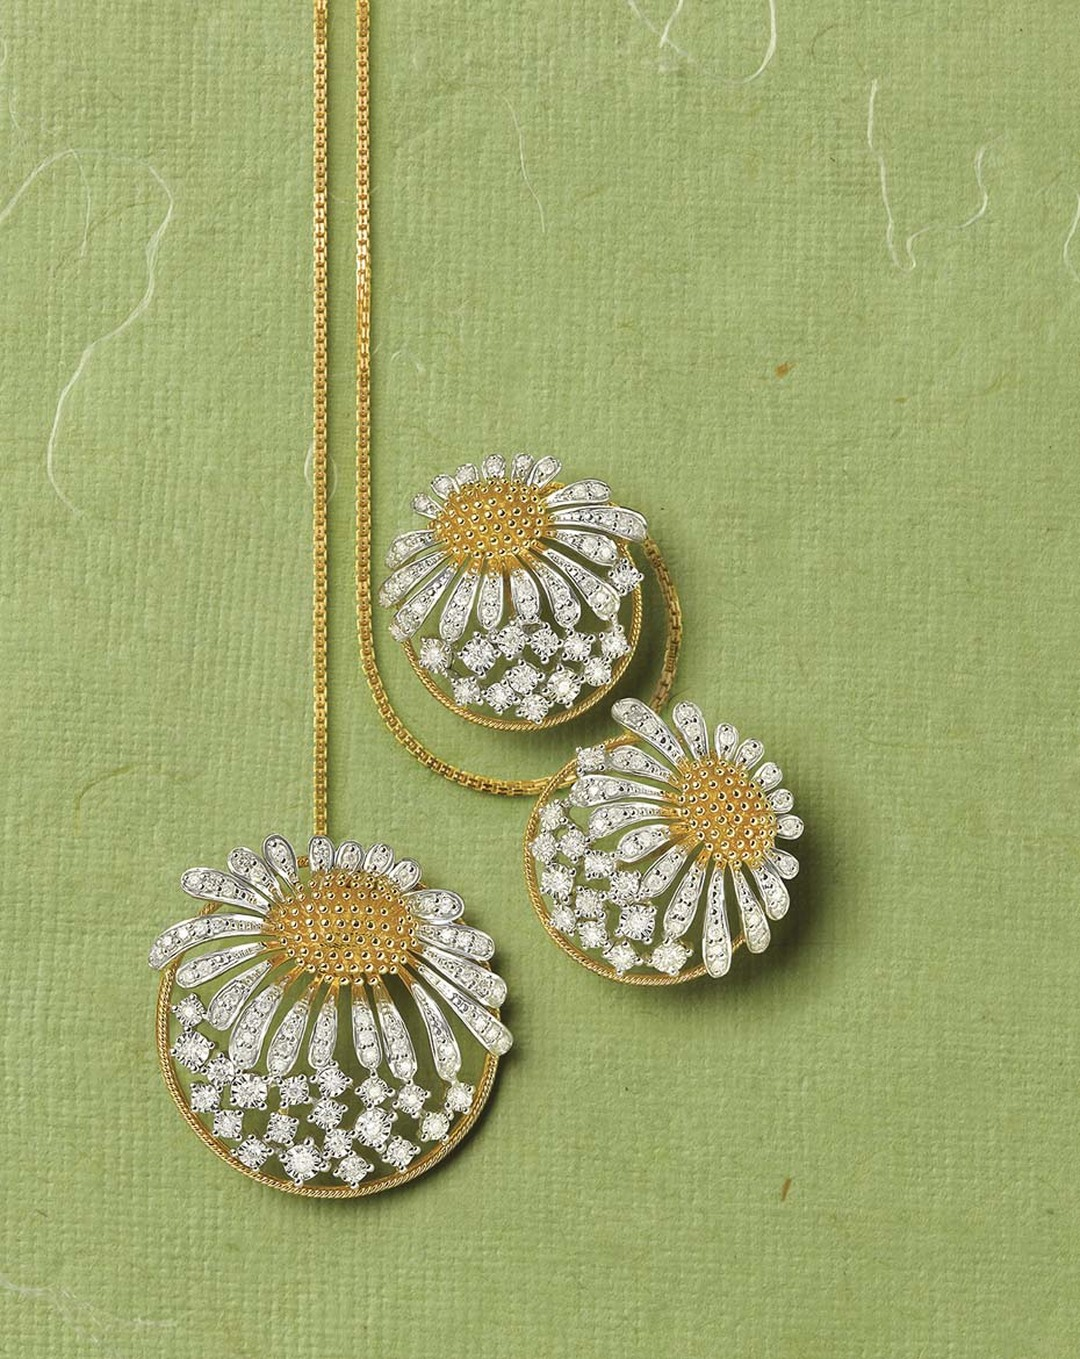 Tanishq Zyra collection white and yellow gold sunflower earrings and necklace studded with white diamonds.